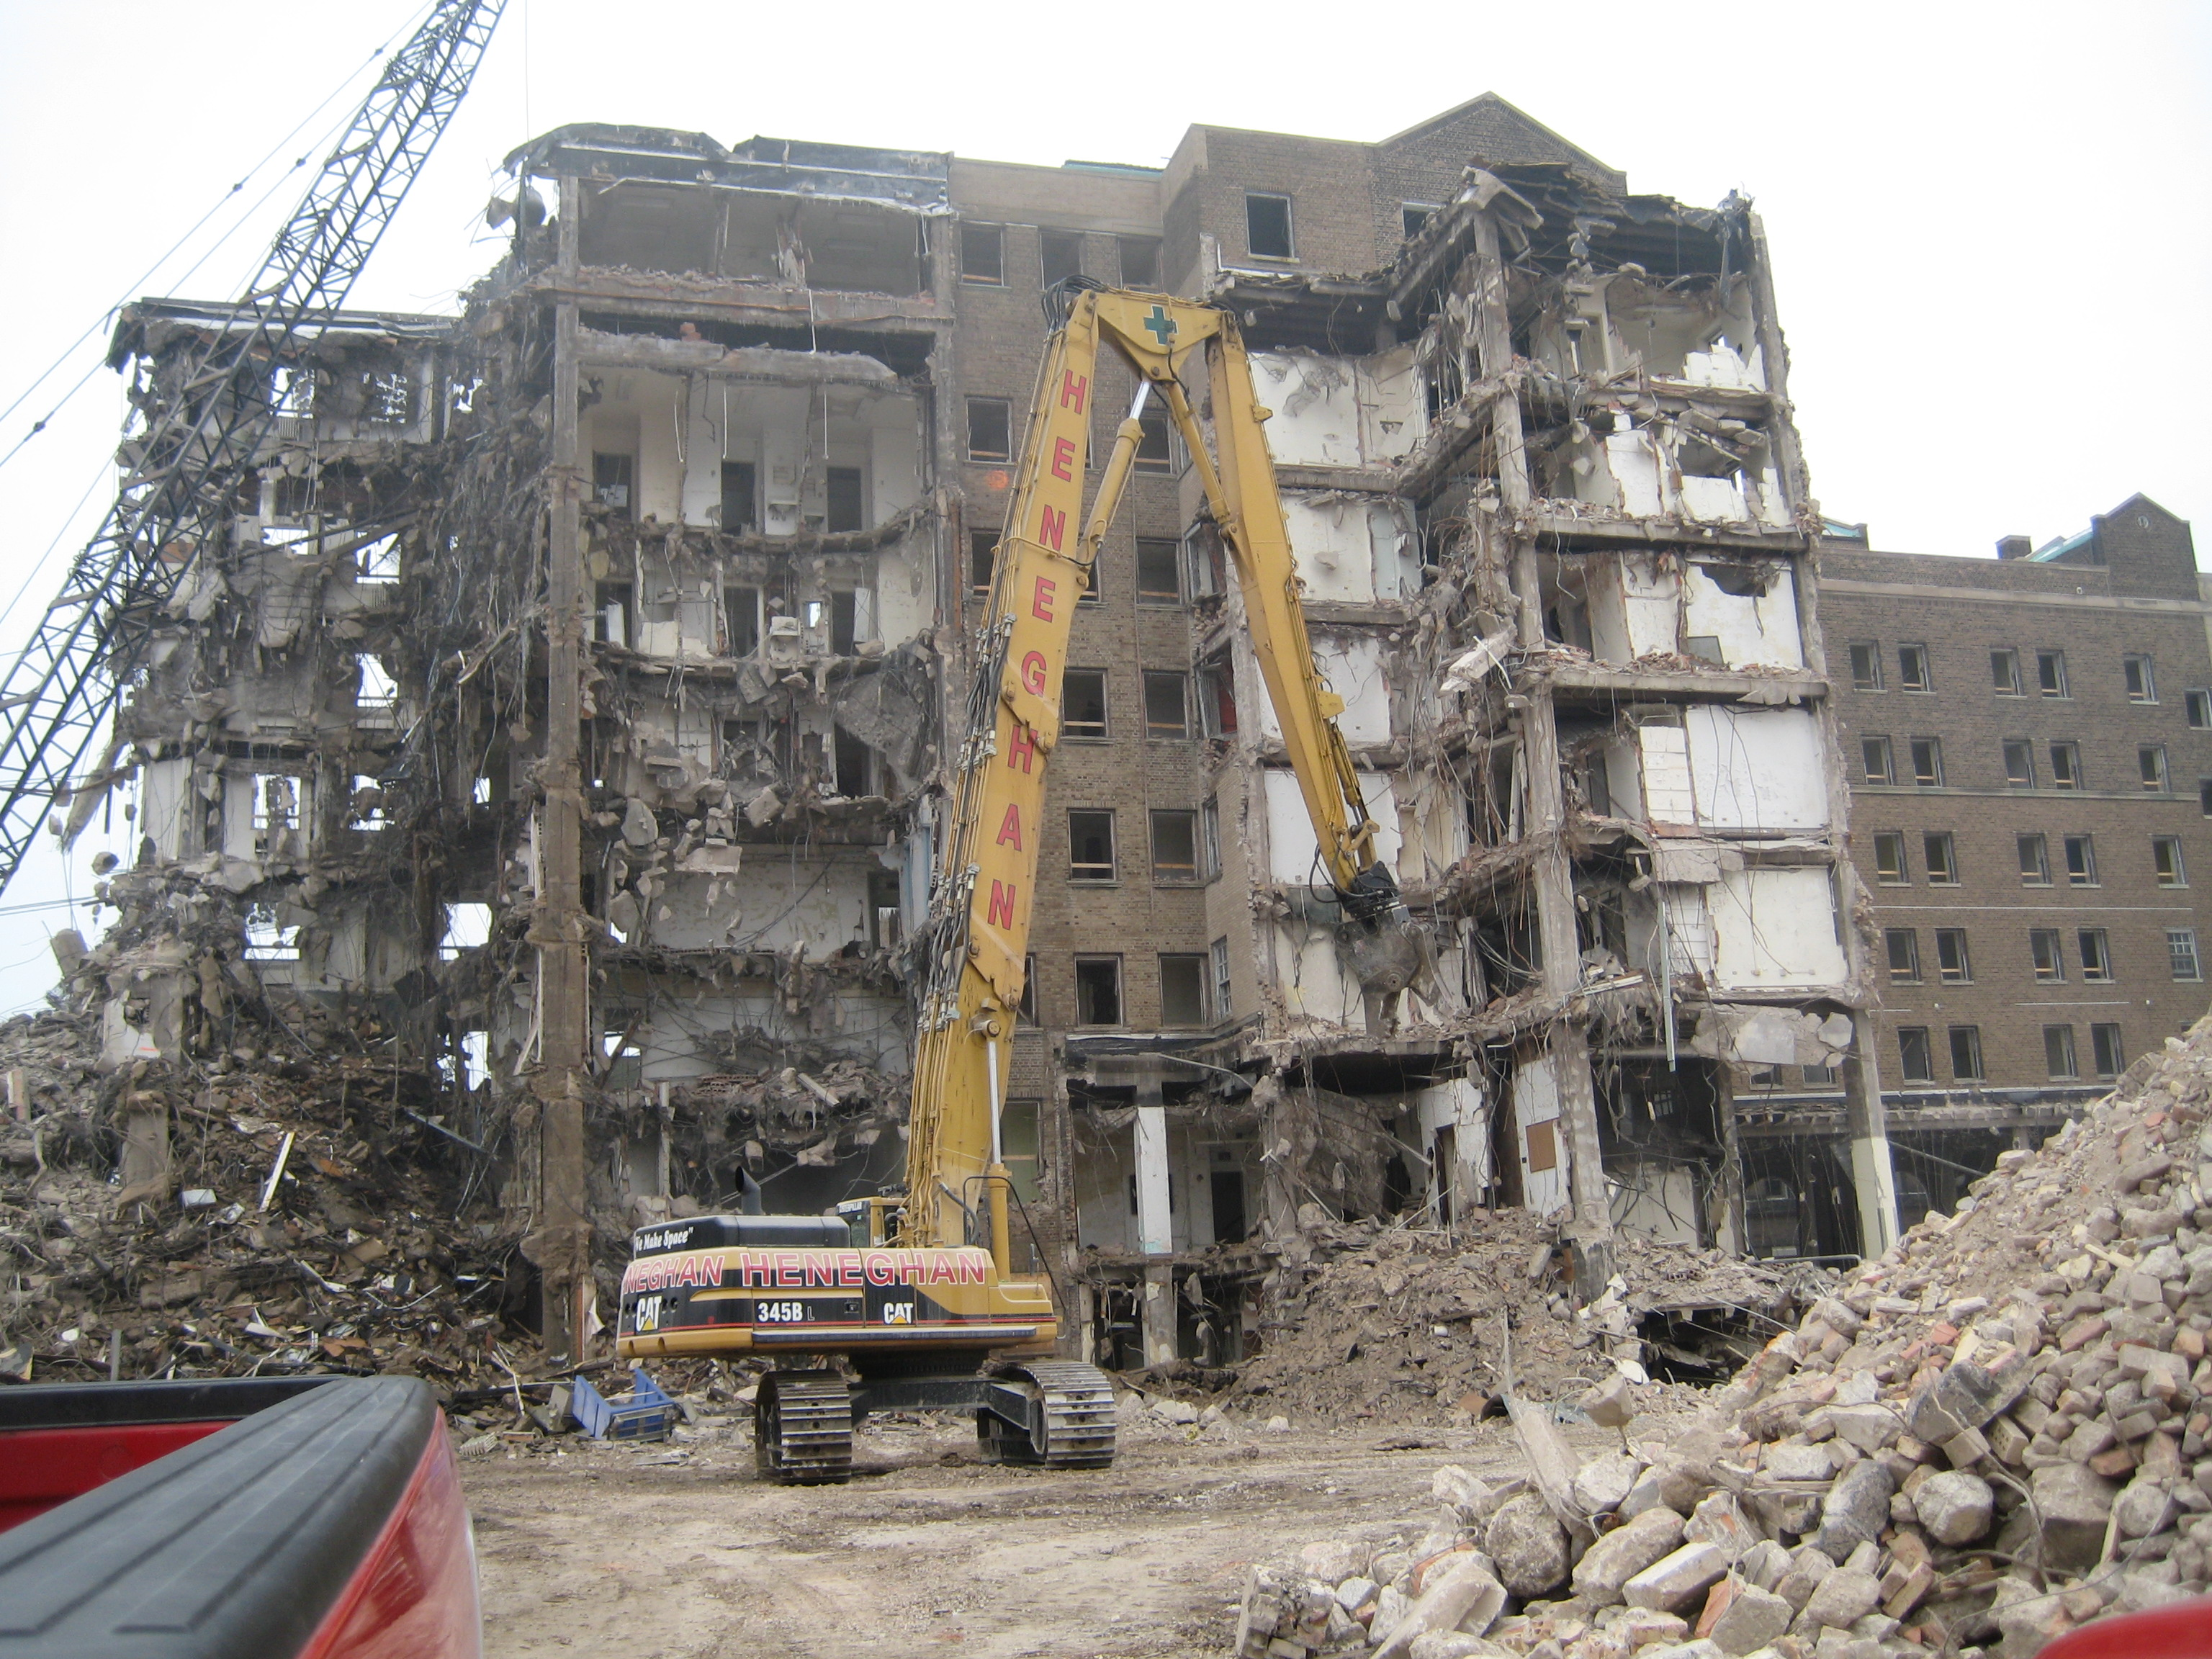 Michael Reese Hospital, healthcare demolition